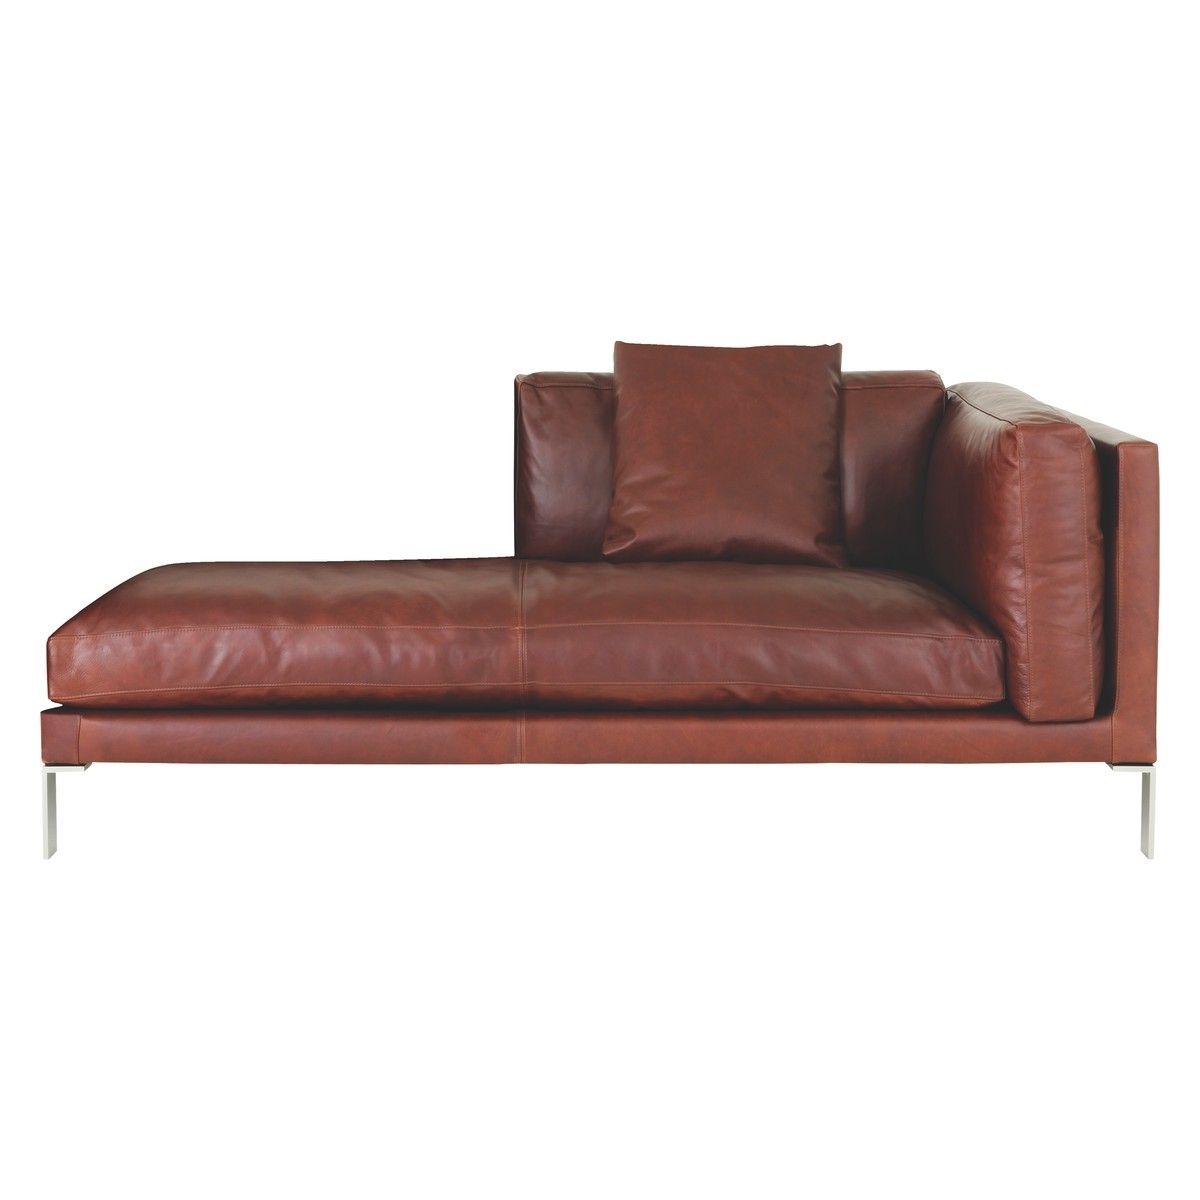 Terrific Tan Leather Chaise Lounge 45 With Fabulous Chaises In Most Current Leather Chaises (View 15 of 15)